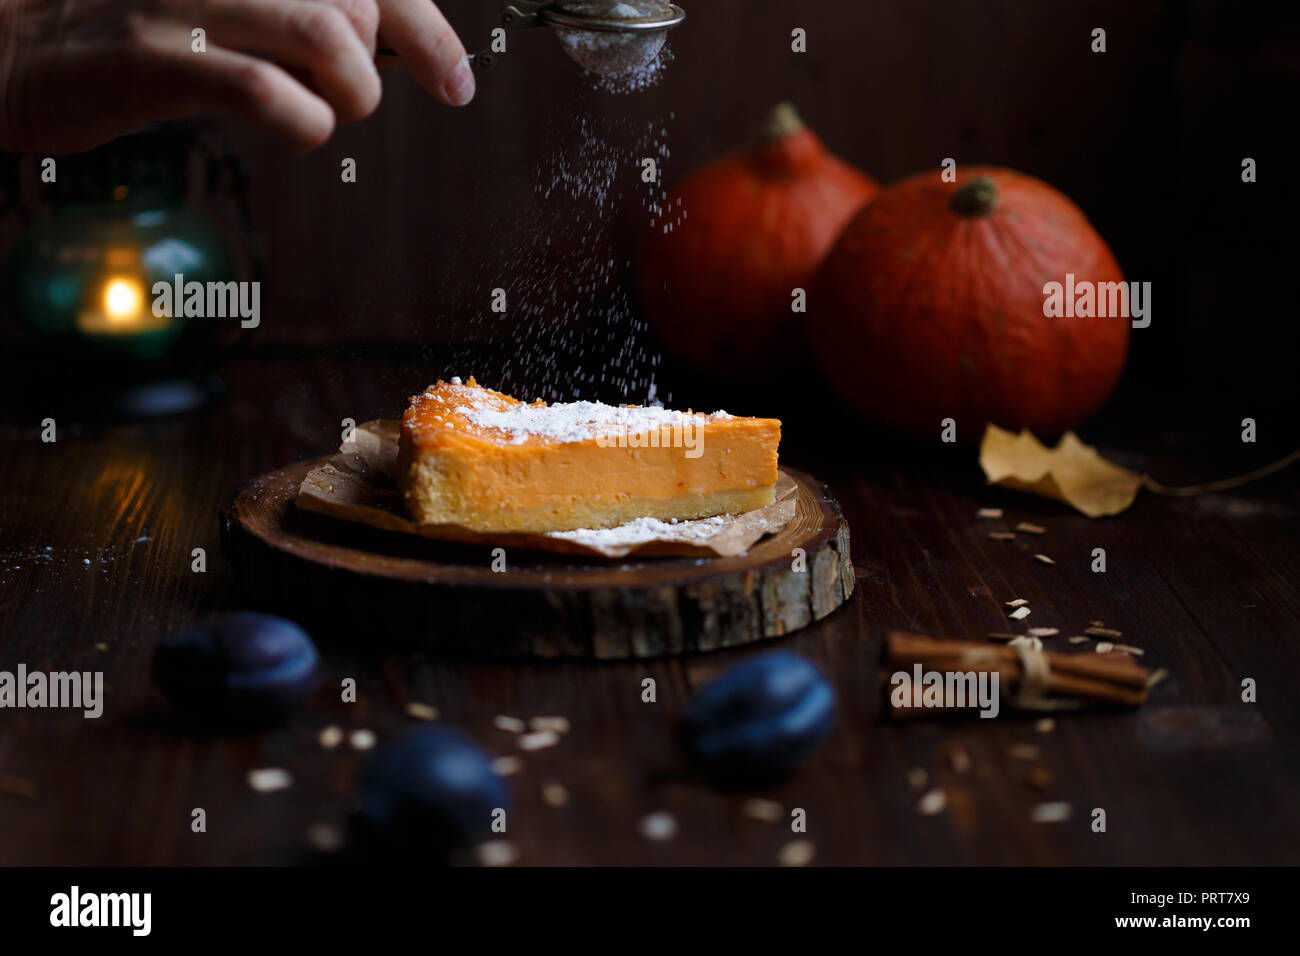 Female hand sprinkles powdered sugar on pumpkin cheesecake. Pumpkins, table lamp, foliage, vanilla on a wooden dark background. Autumn and winter cozy concept - Stock Image